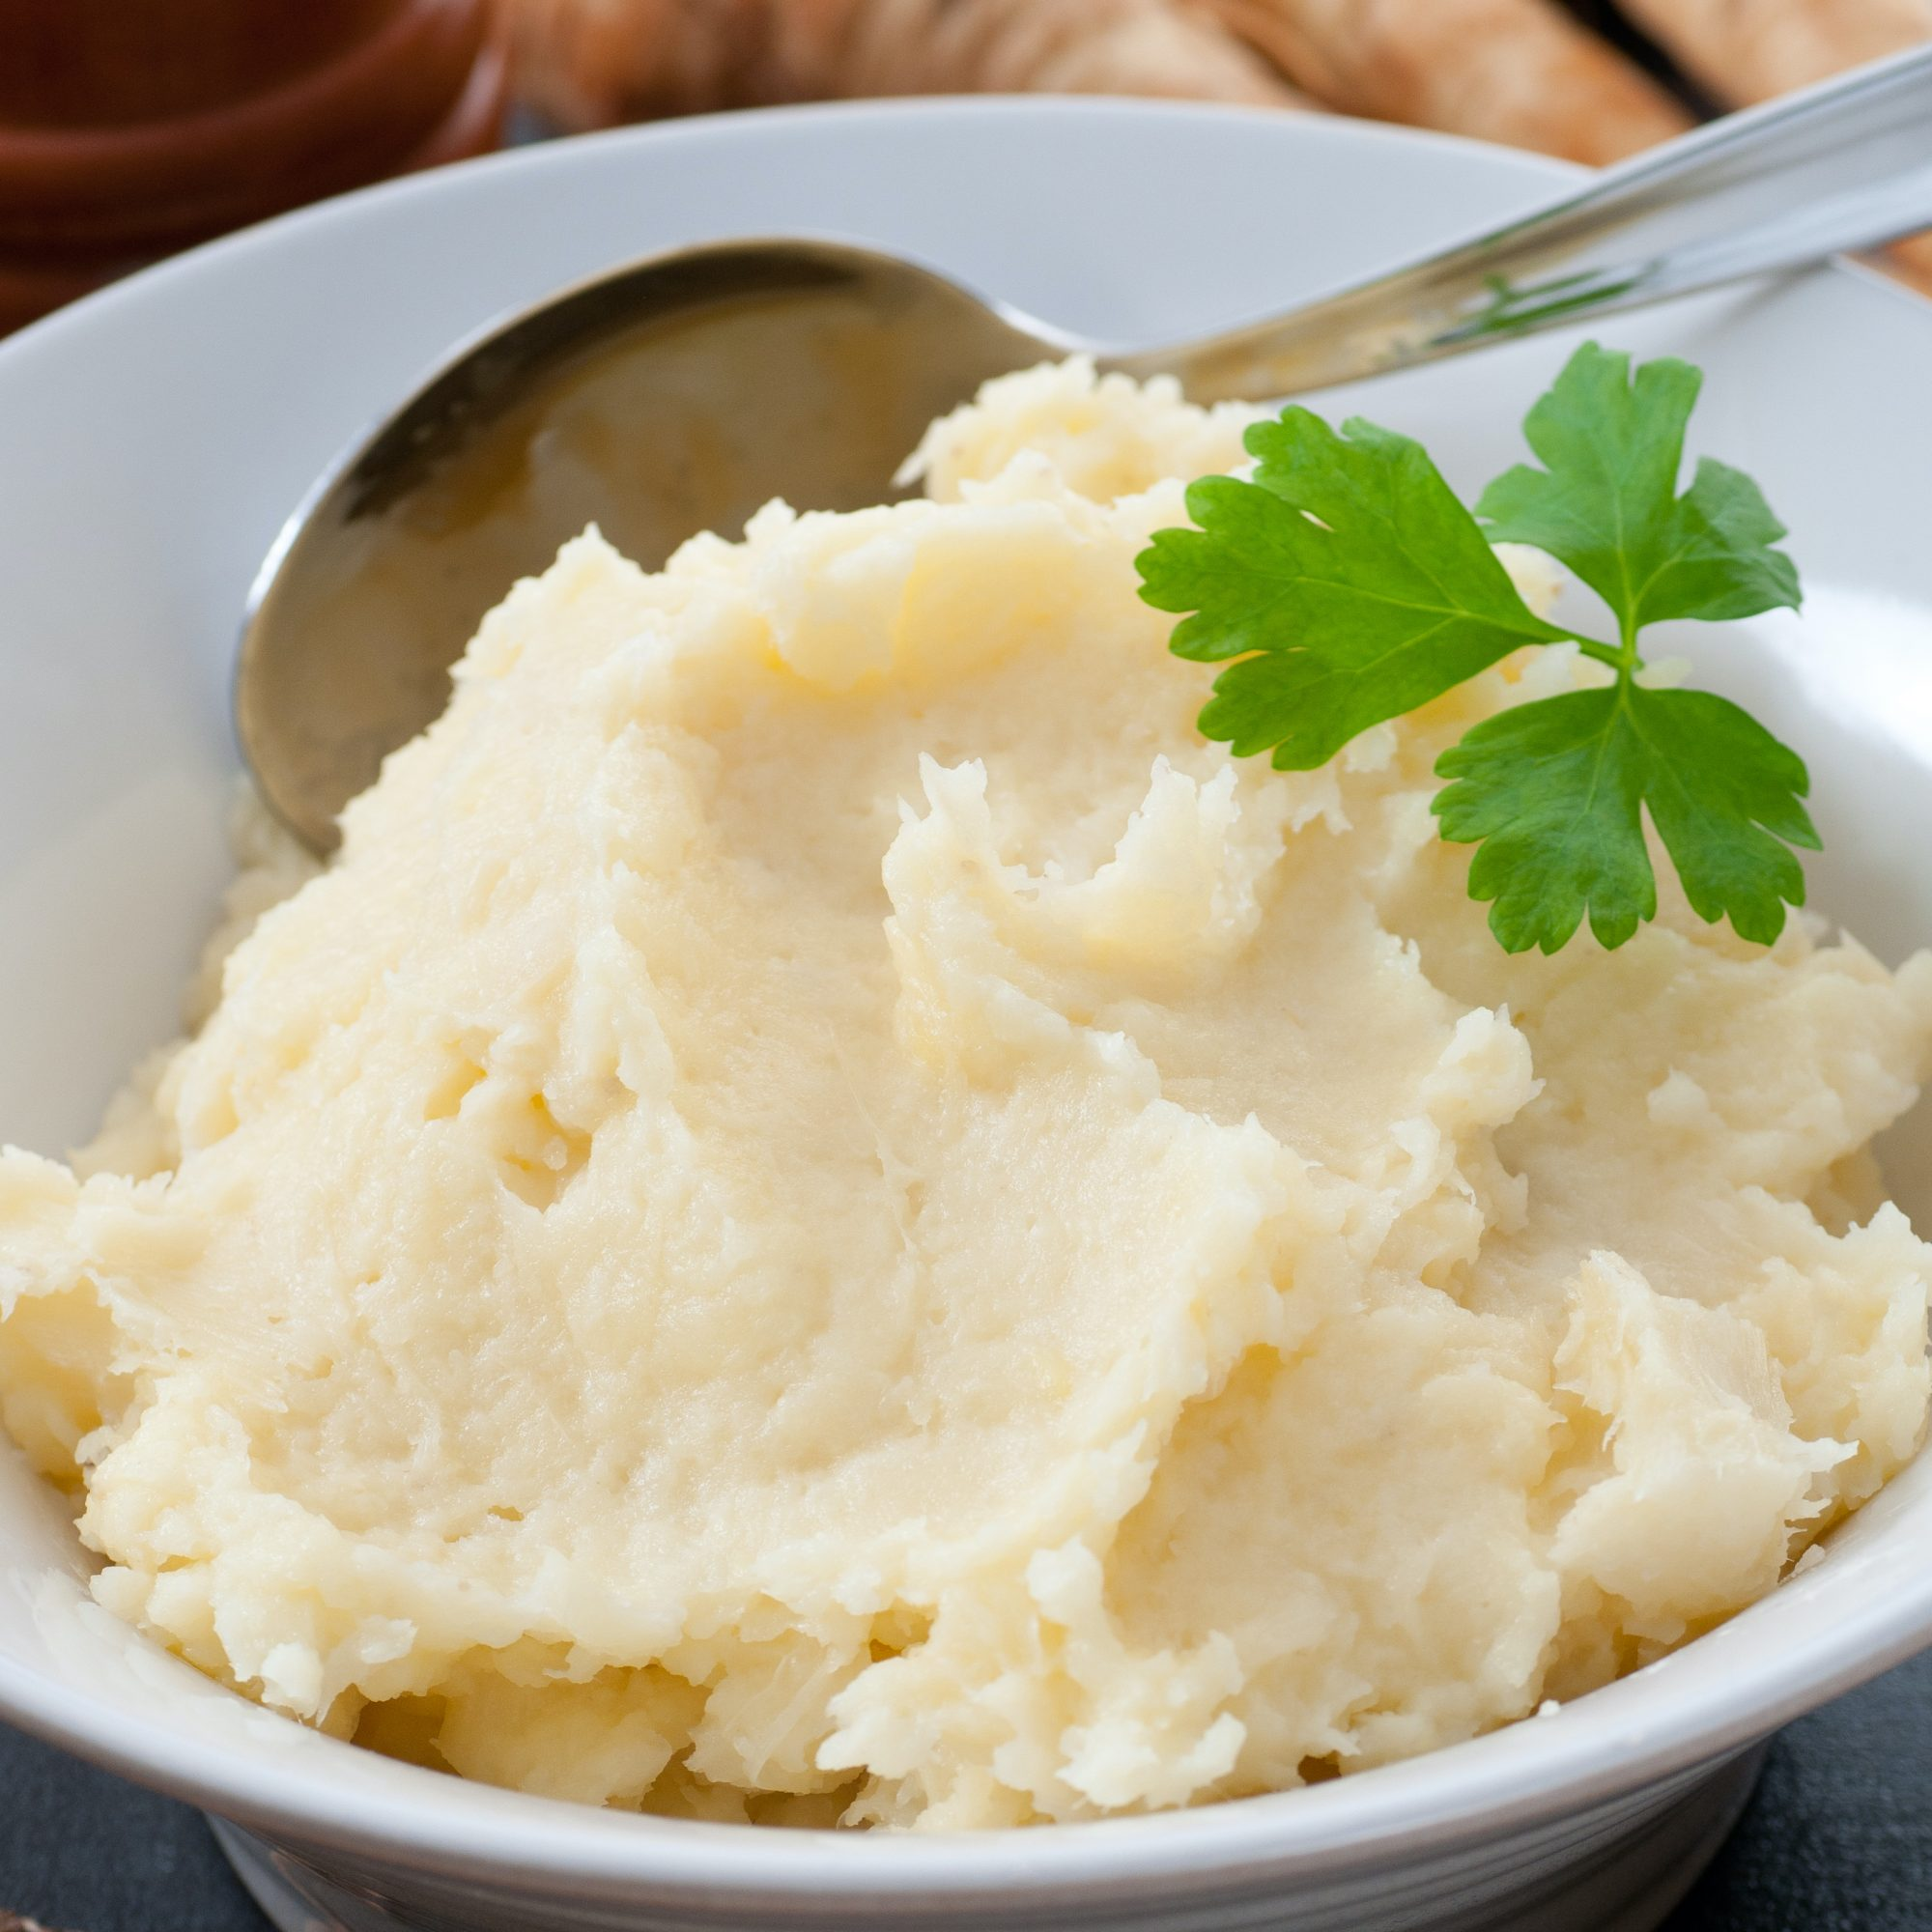 mashed turnips in a white bowl with parsley garnic